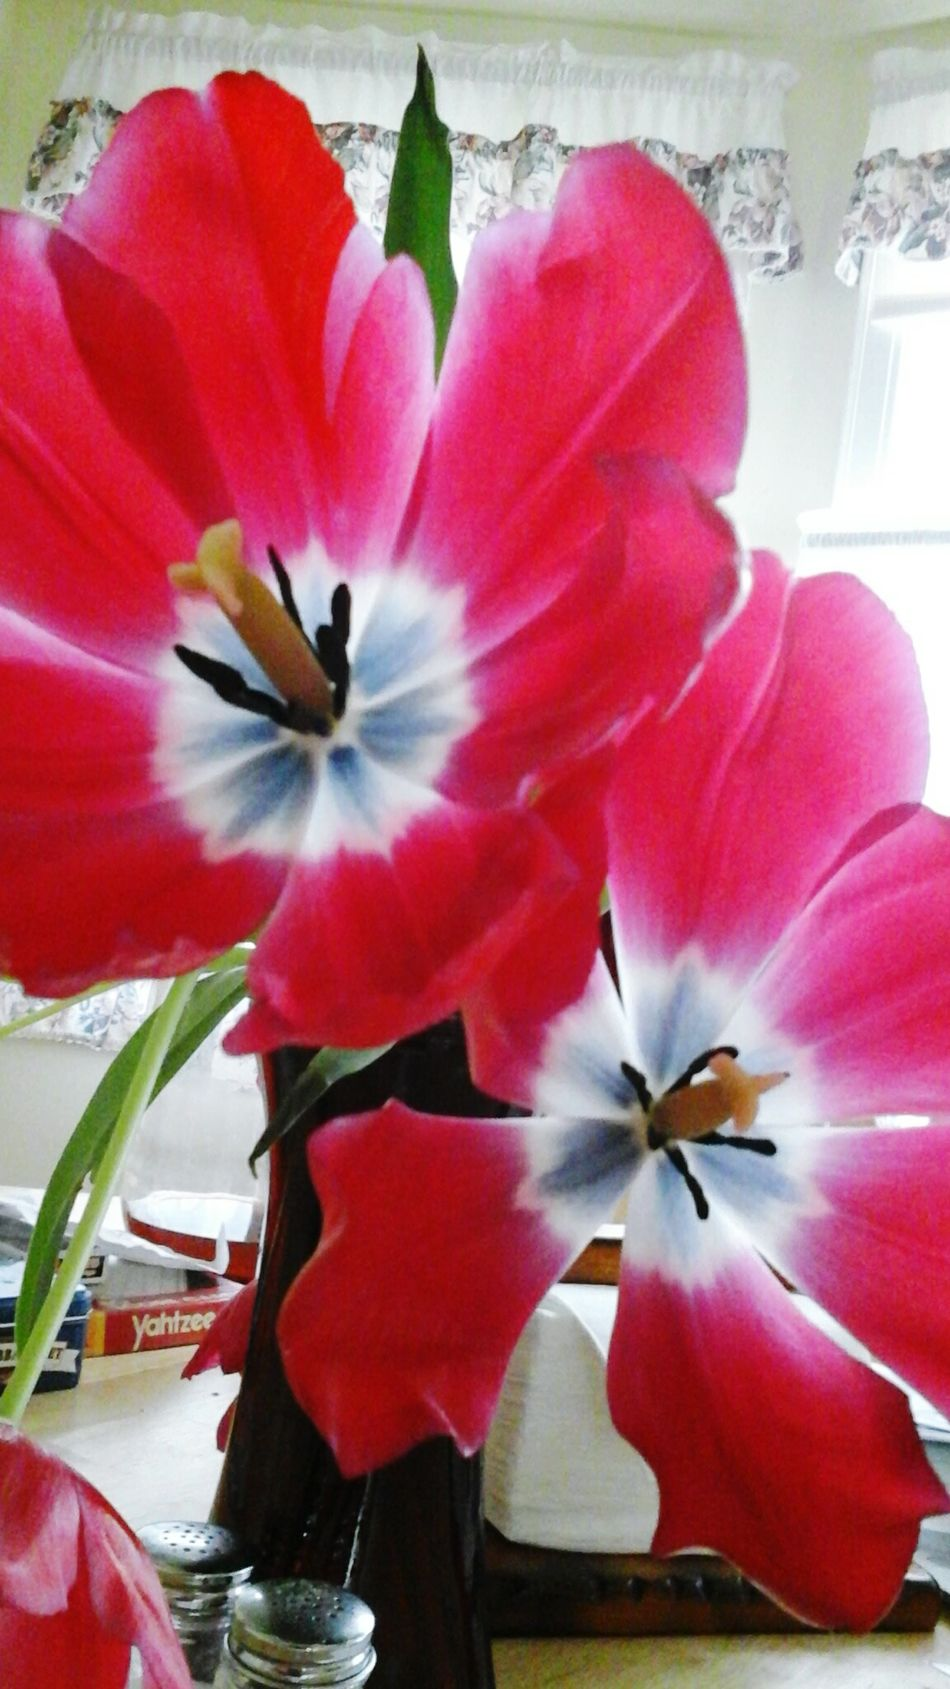 Better Look Twice Awesome_shots Sopretty Nature Luver Daily_captures Nature_collection Tulip Power! Every Picture Tells A Story Freelance Life Repeating Patterns